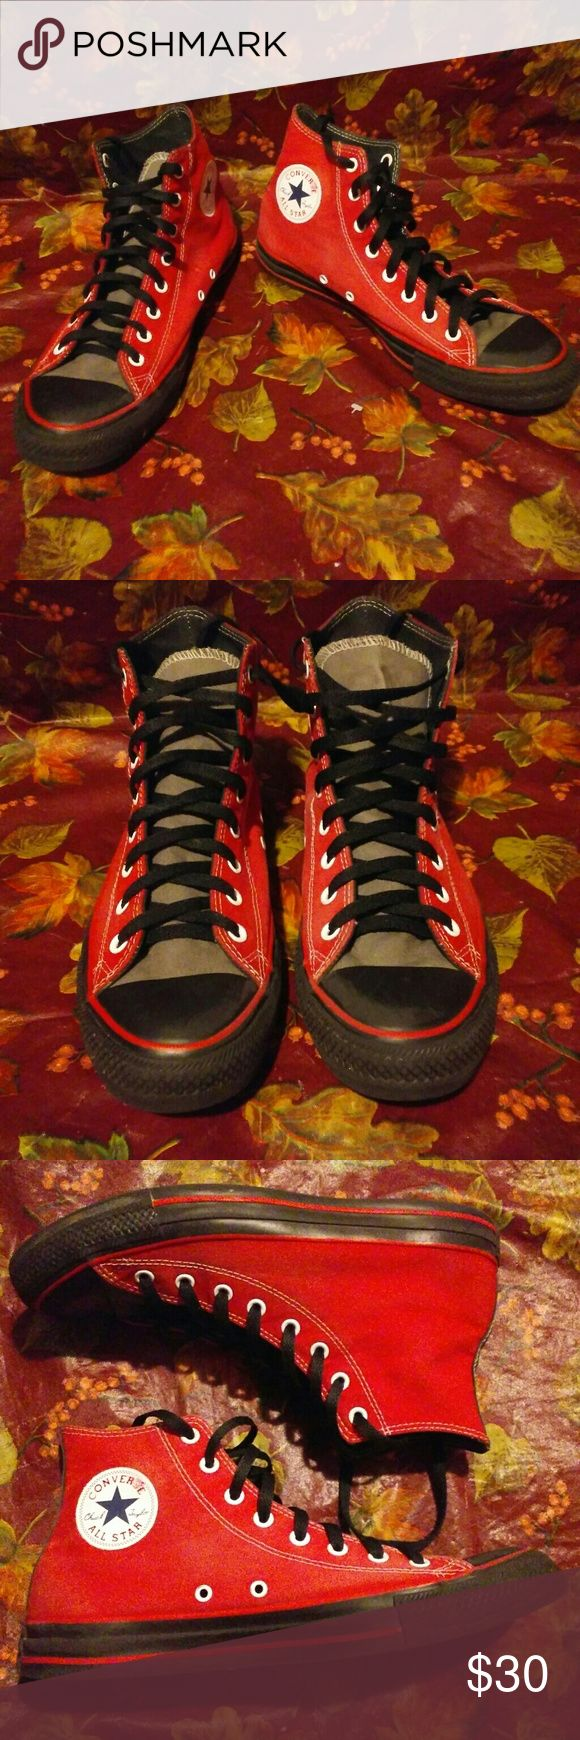 Red Converse All Star Chuck Taylor Size 11 Shoes! These shoes are in great shape. Made by Converse, a brand known for quality. They are red and a size 11 in mens. Converse Sneakers. Converse Shoes Sneakers